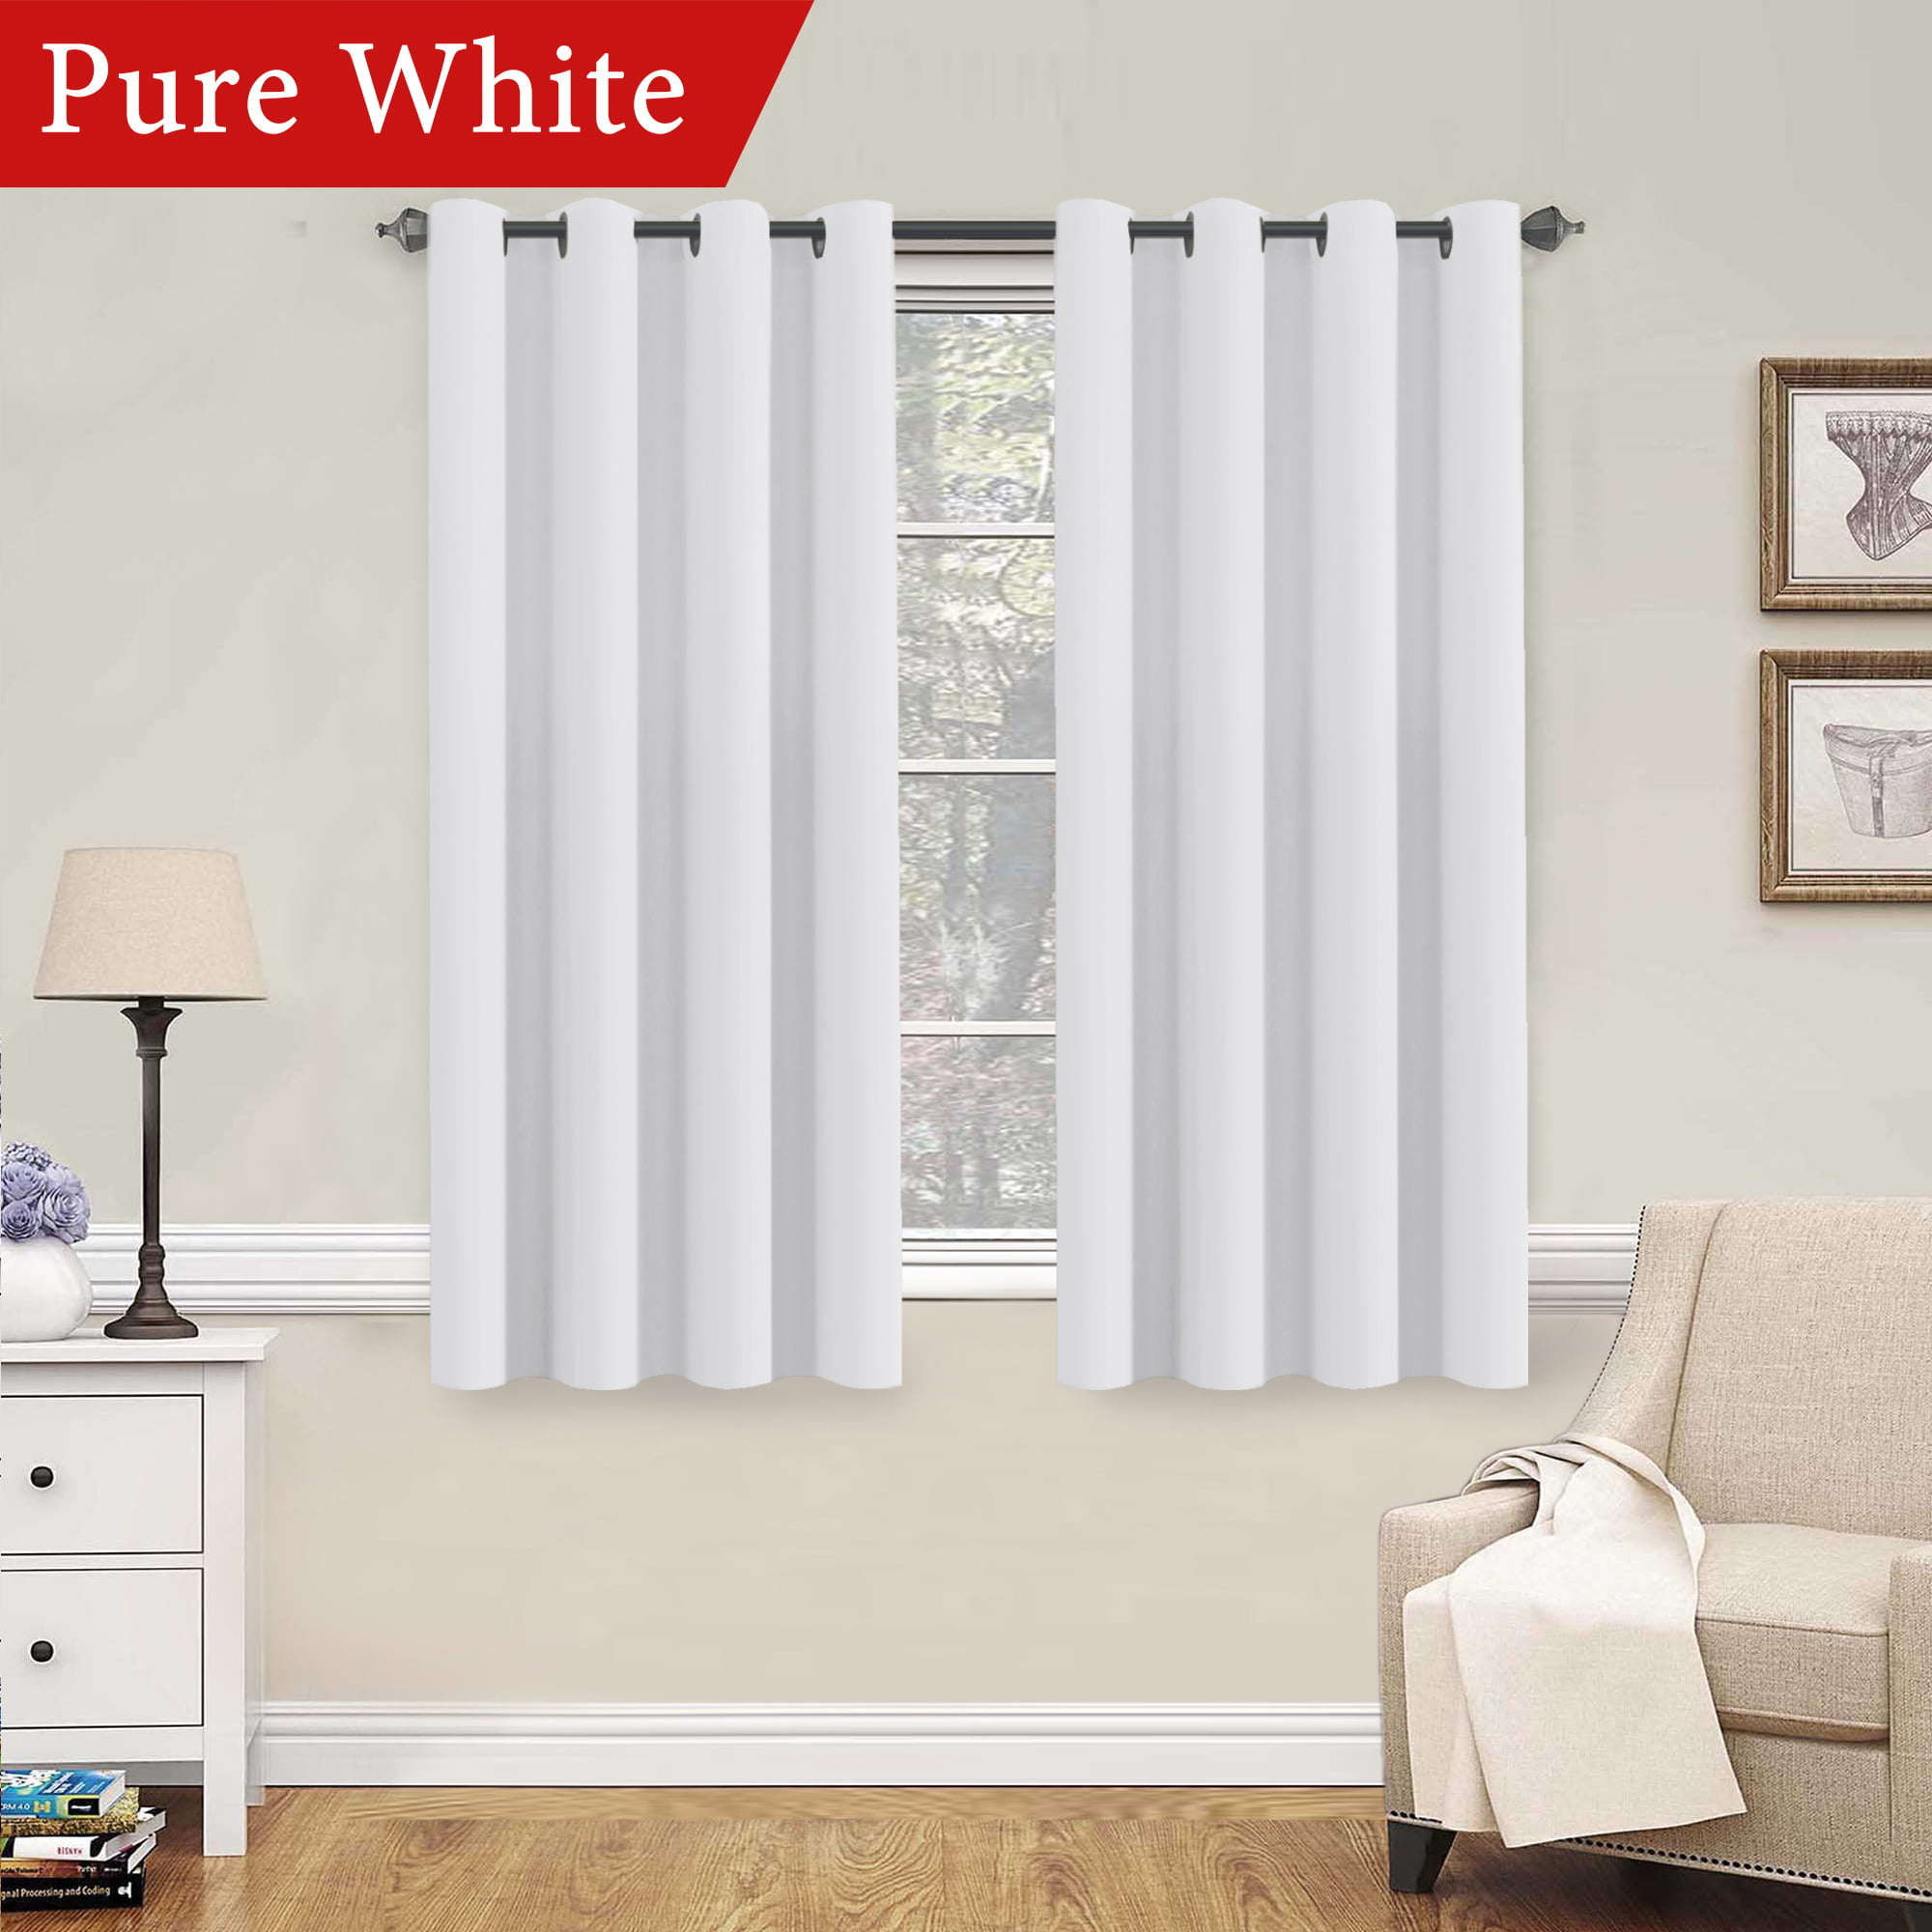 h versailtex pure white curtains 63 inch length window treatment room darkening panels for. Black Bedroom Furniture Sets. Home Design Ideas